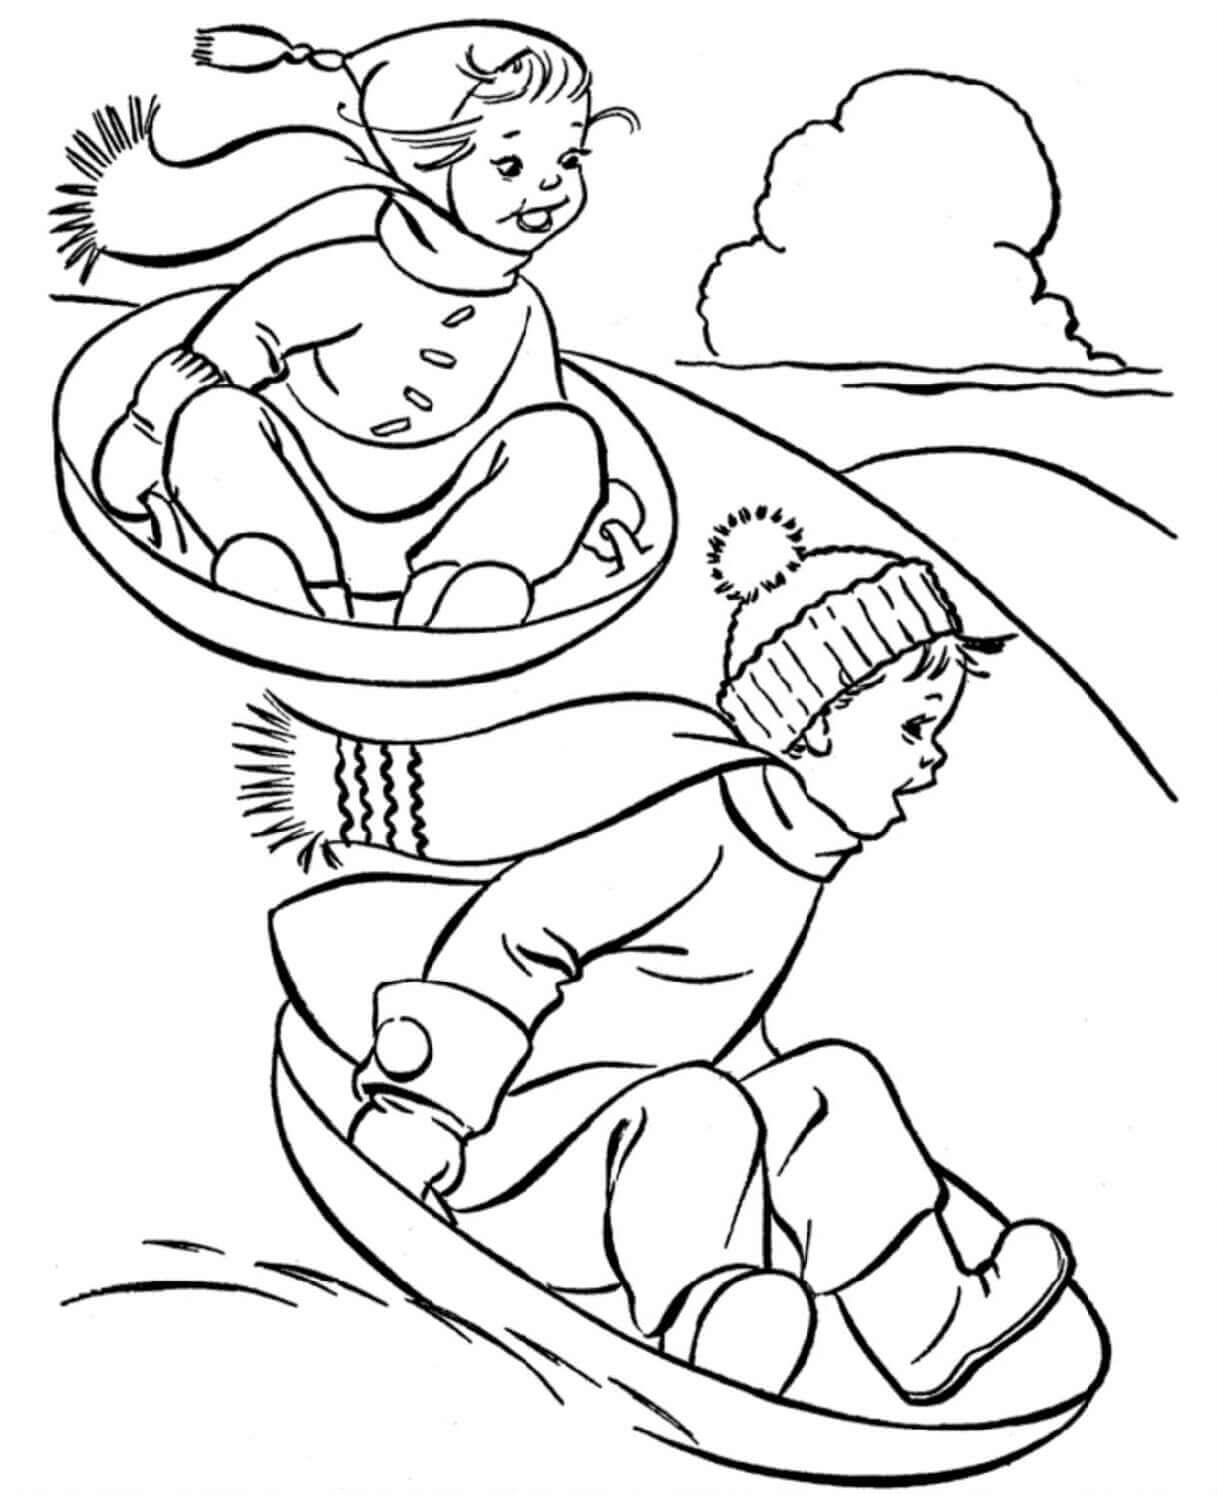 Sledding Winter Coloring Pages